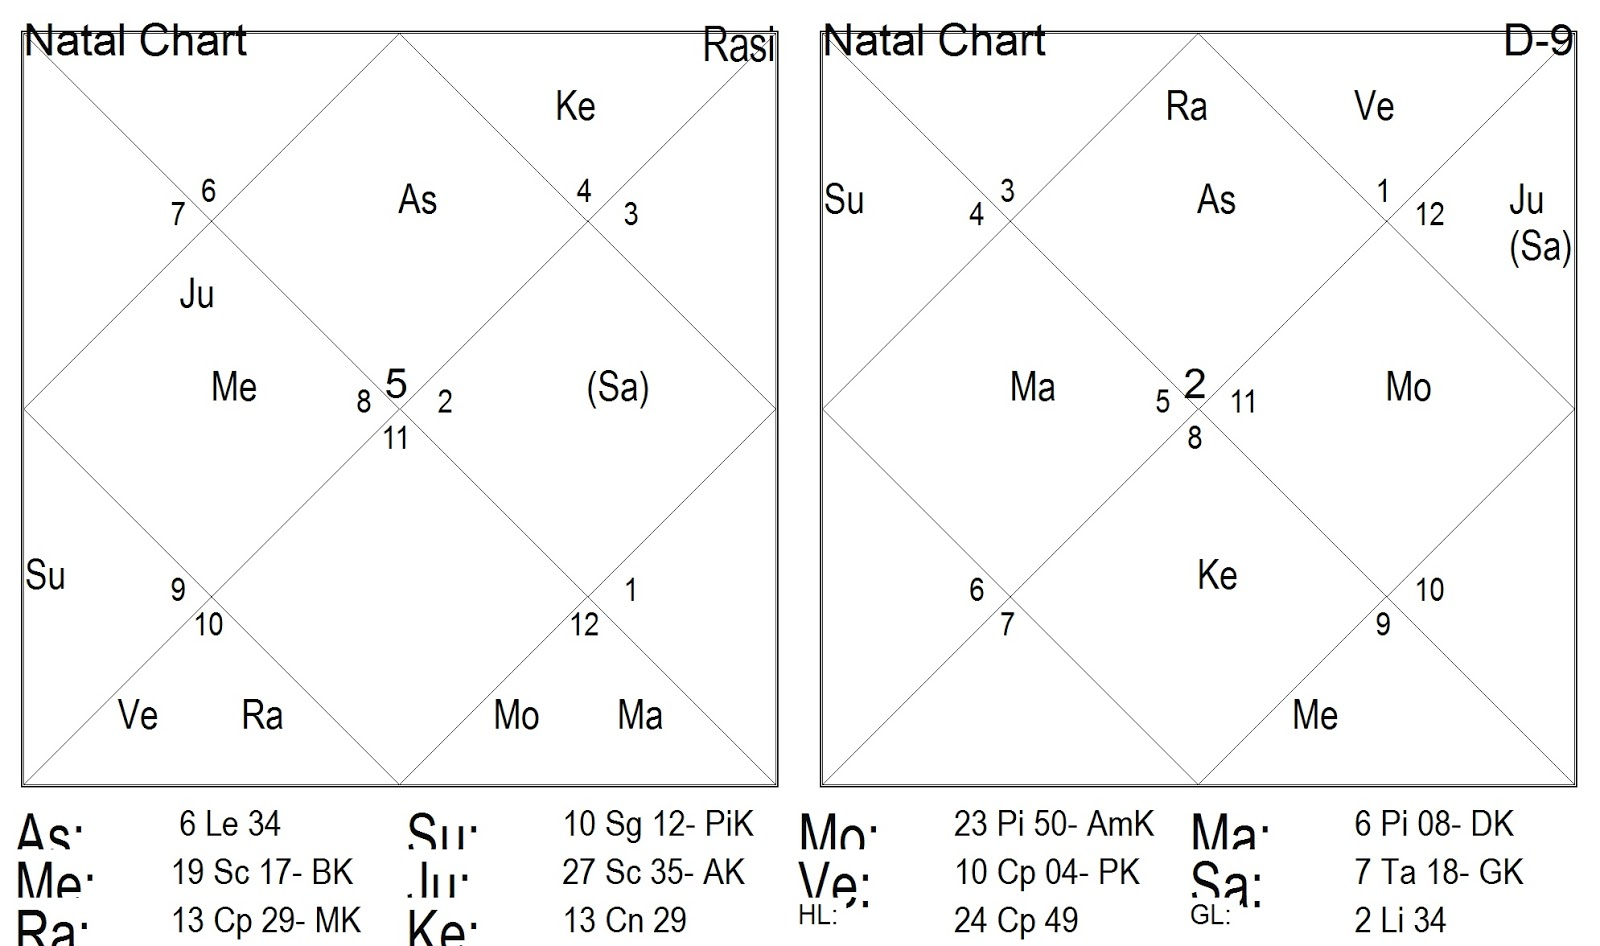 Astrology speaks truth prediction about liberal pm candidate so i will avoid making any prediction about their chances in this elections based on their individuals birth charts nvjuhfo Choice Image